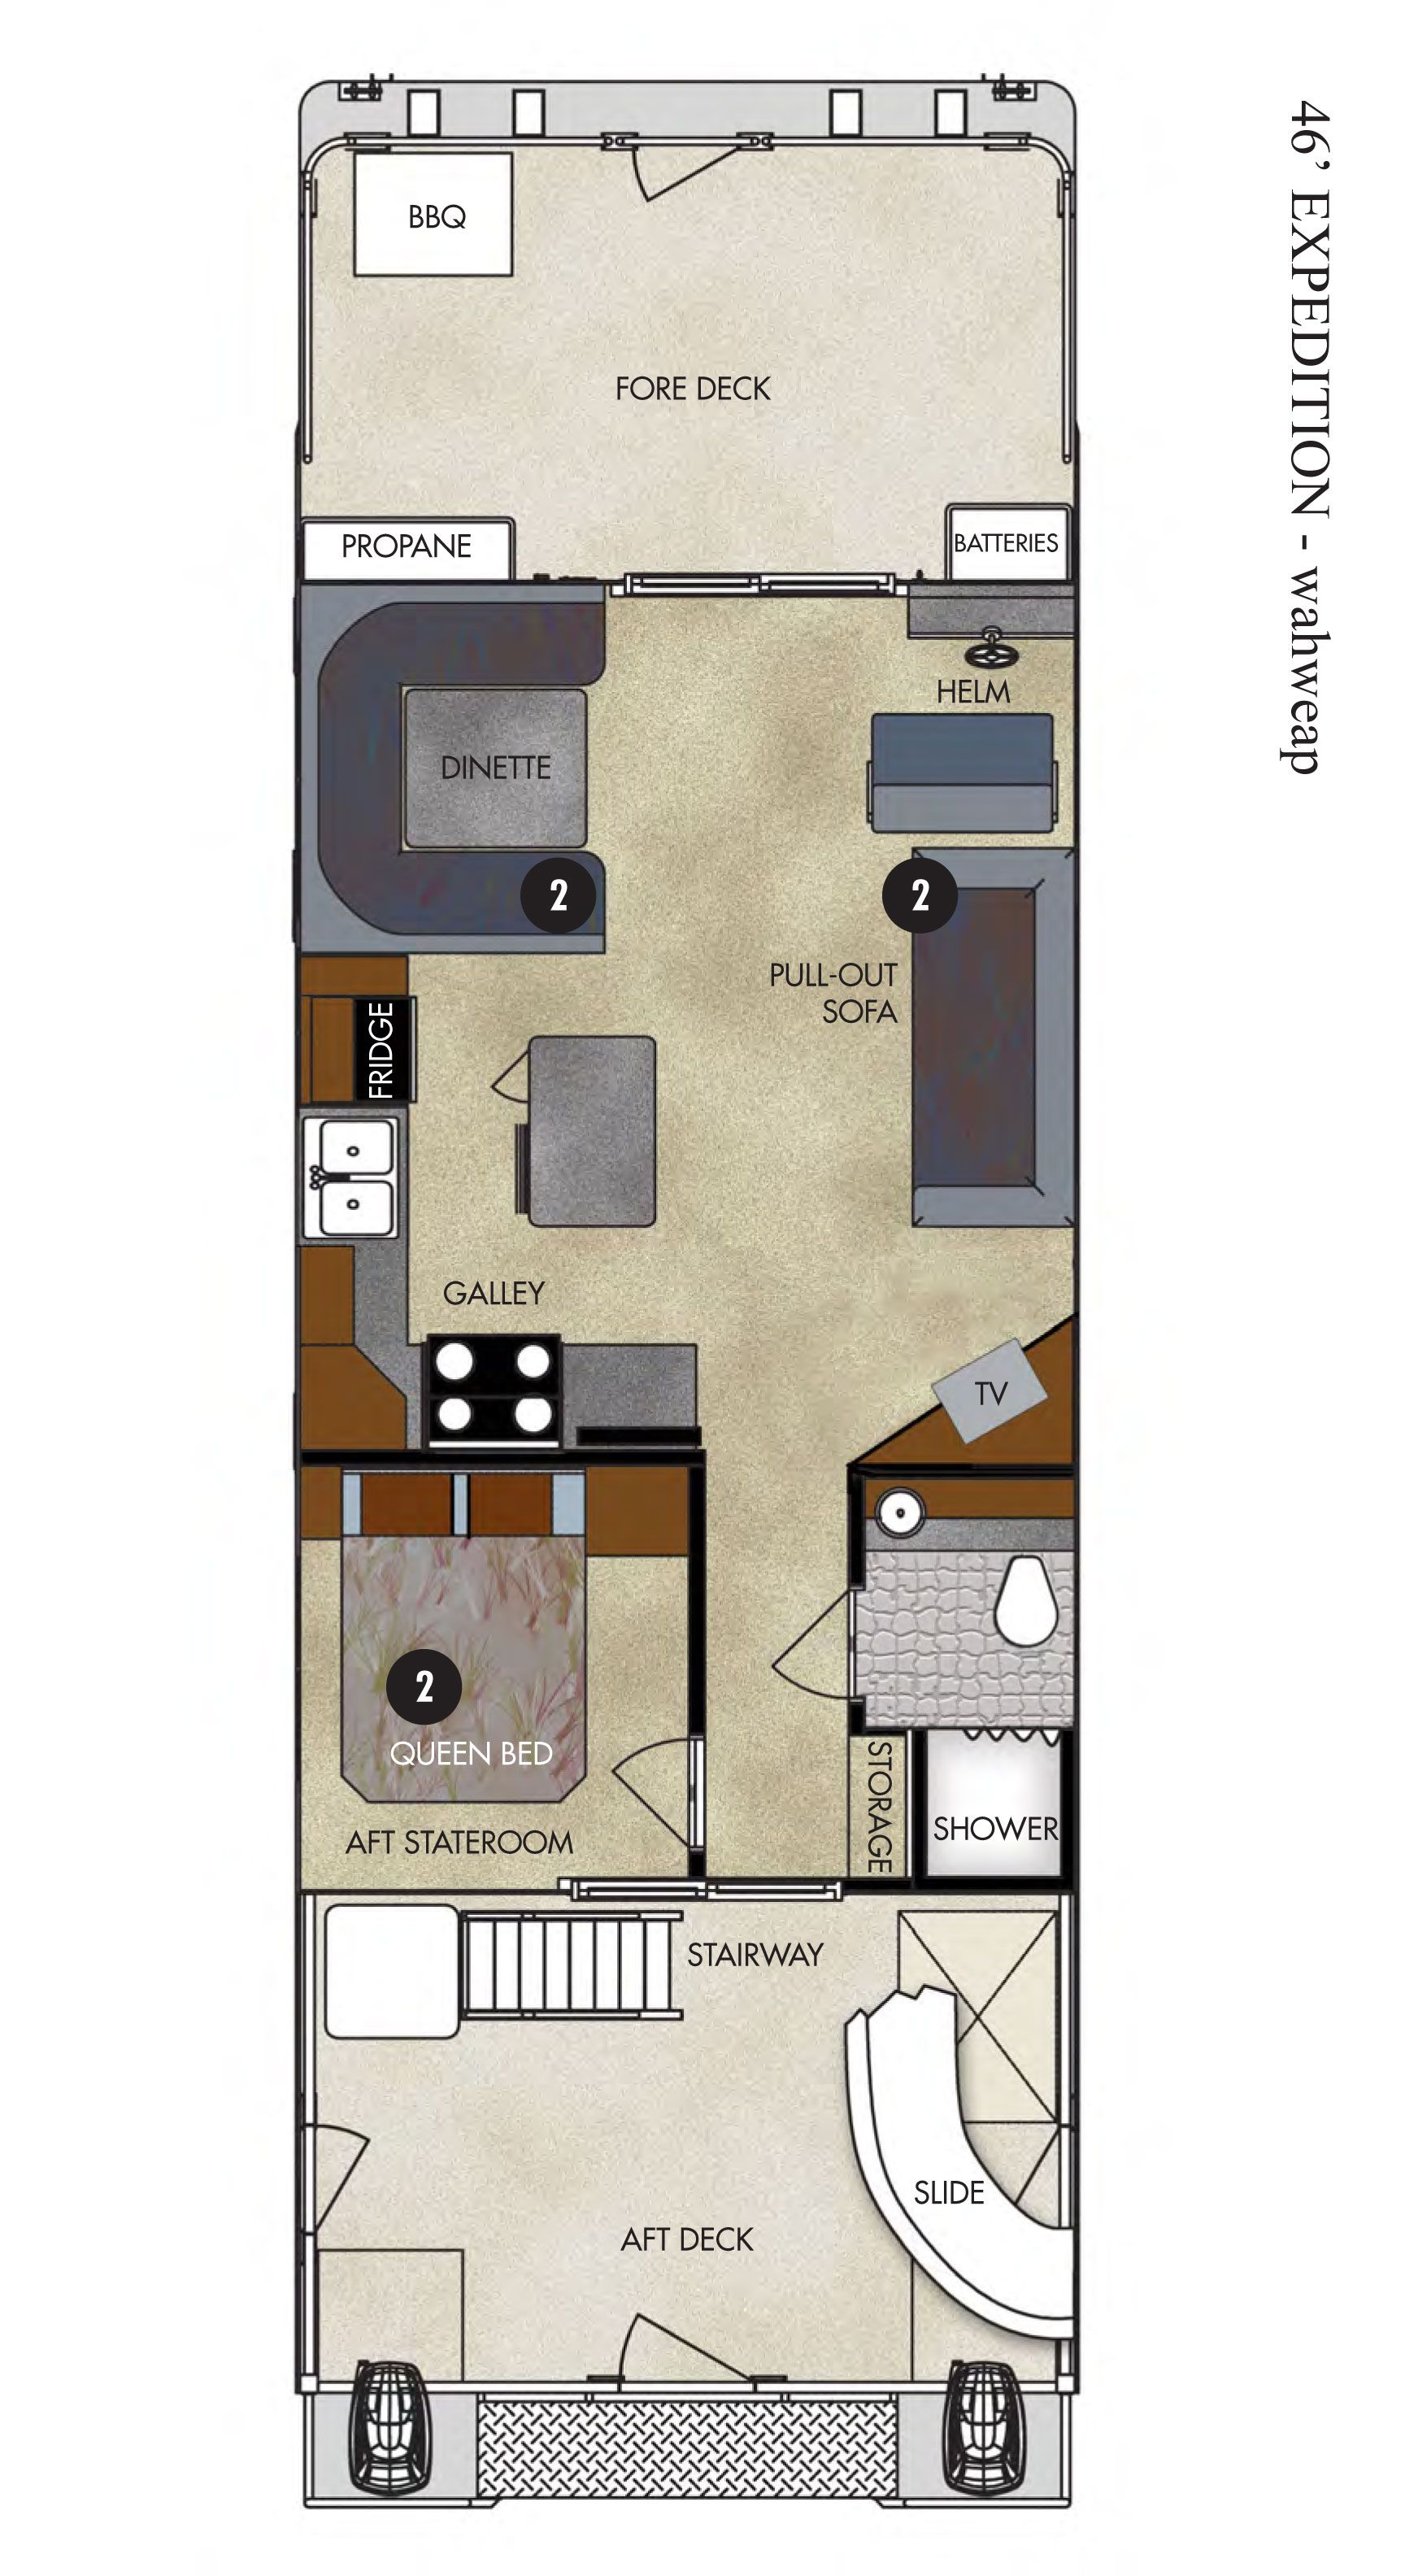 Wahweap Marina 46 Ft Expedition Houseboat Floor Plan Small Houseboats House Floor Plans Floor Plans